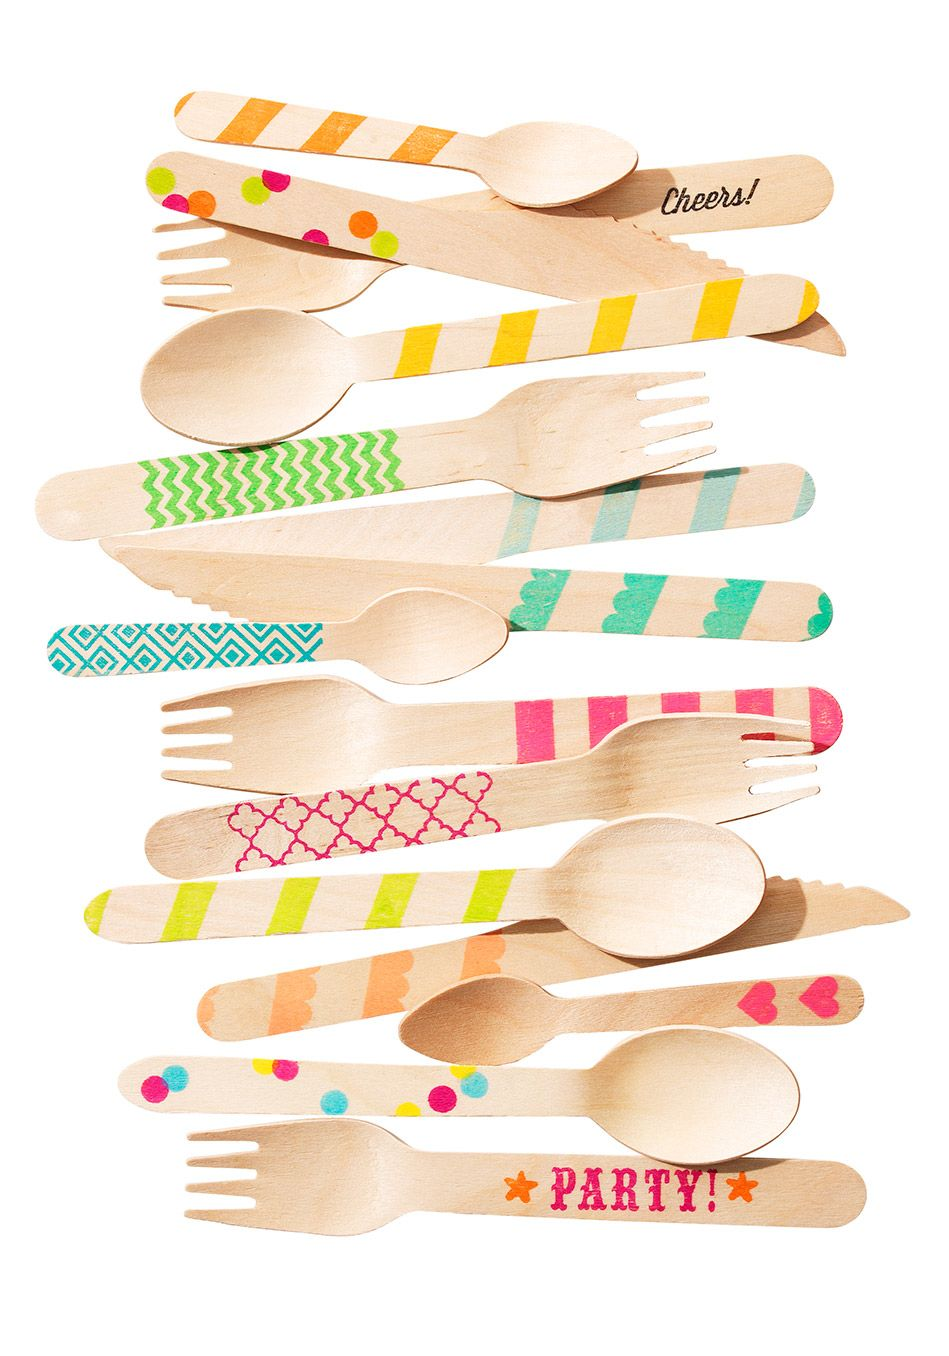 Hand-made spoons from disposable ones